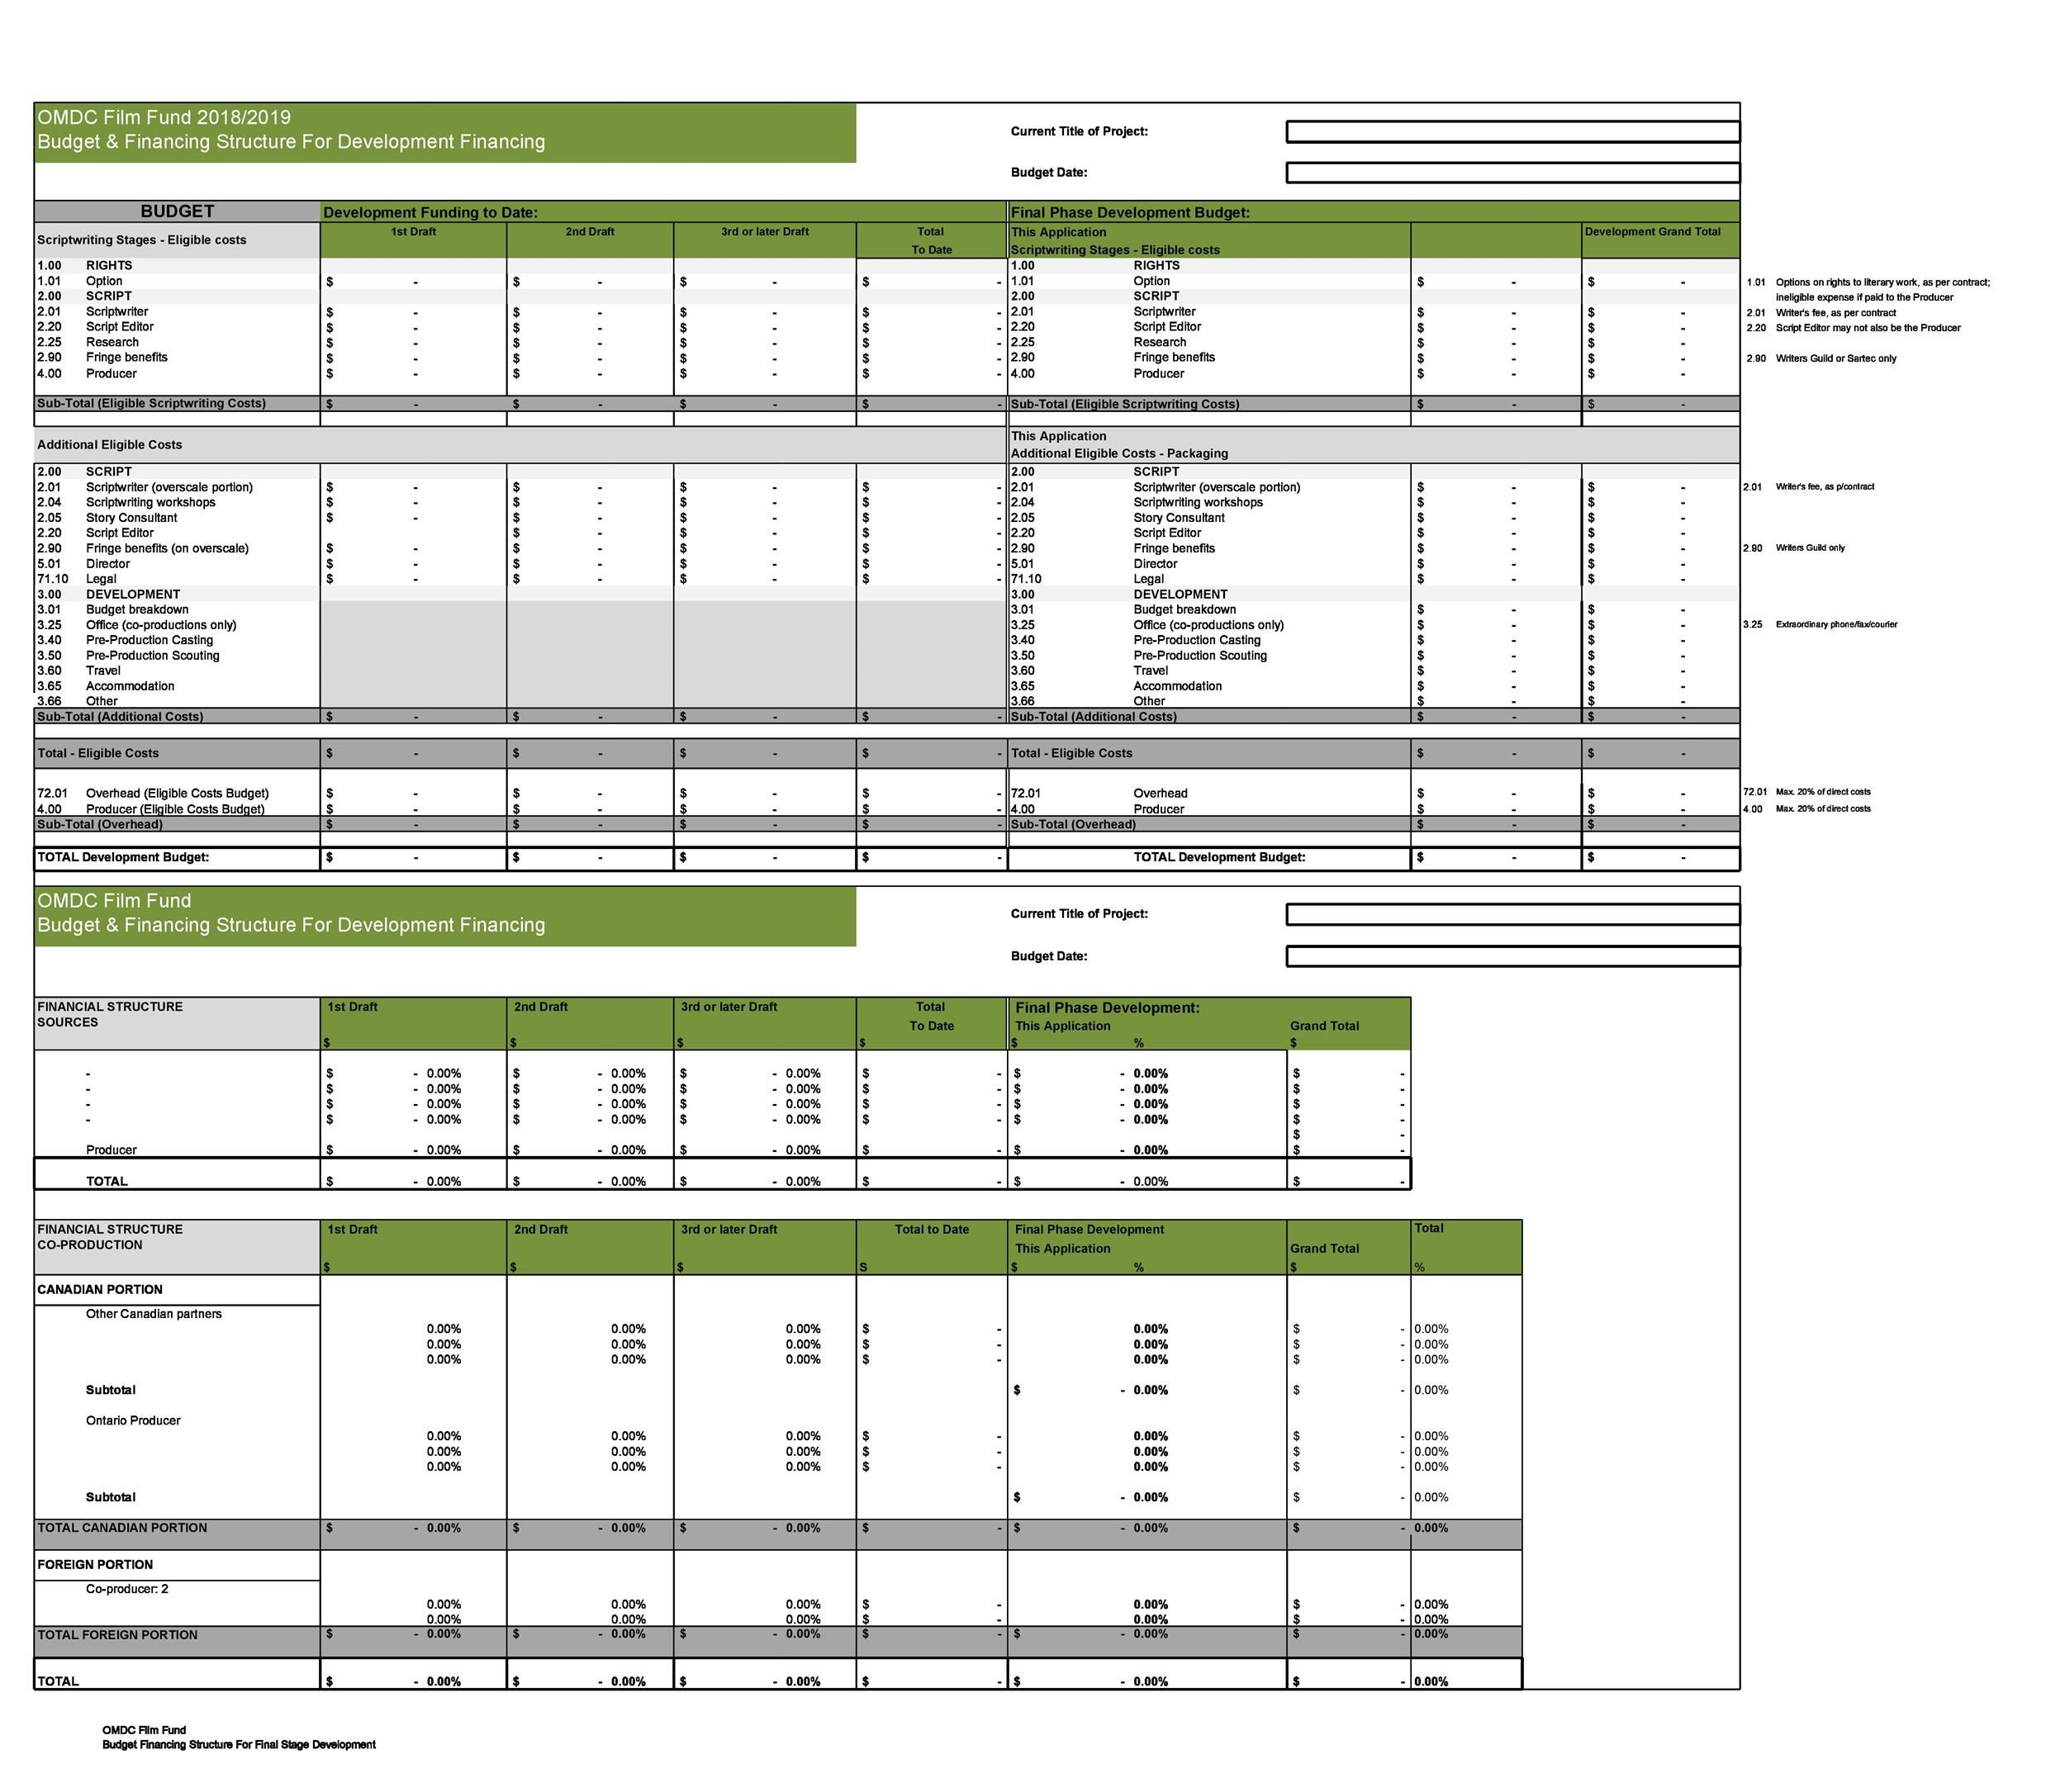 005 Staggering Line Item Budget Template Film Example Full